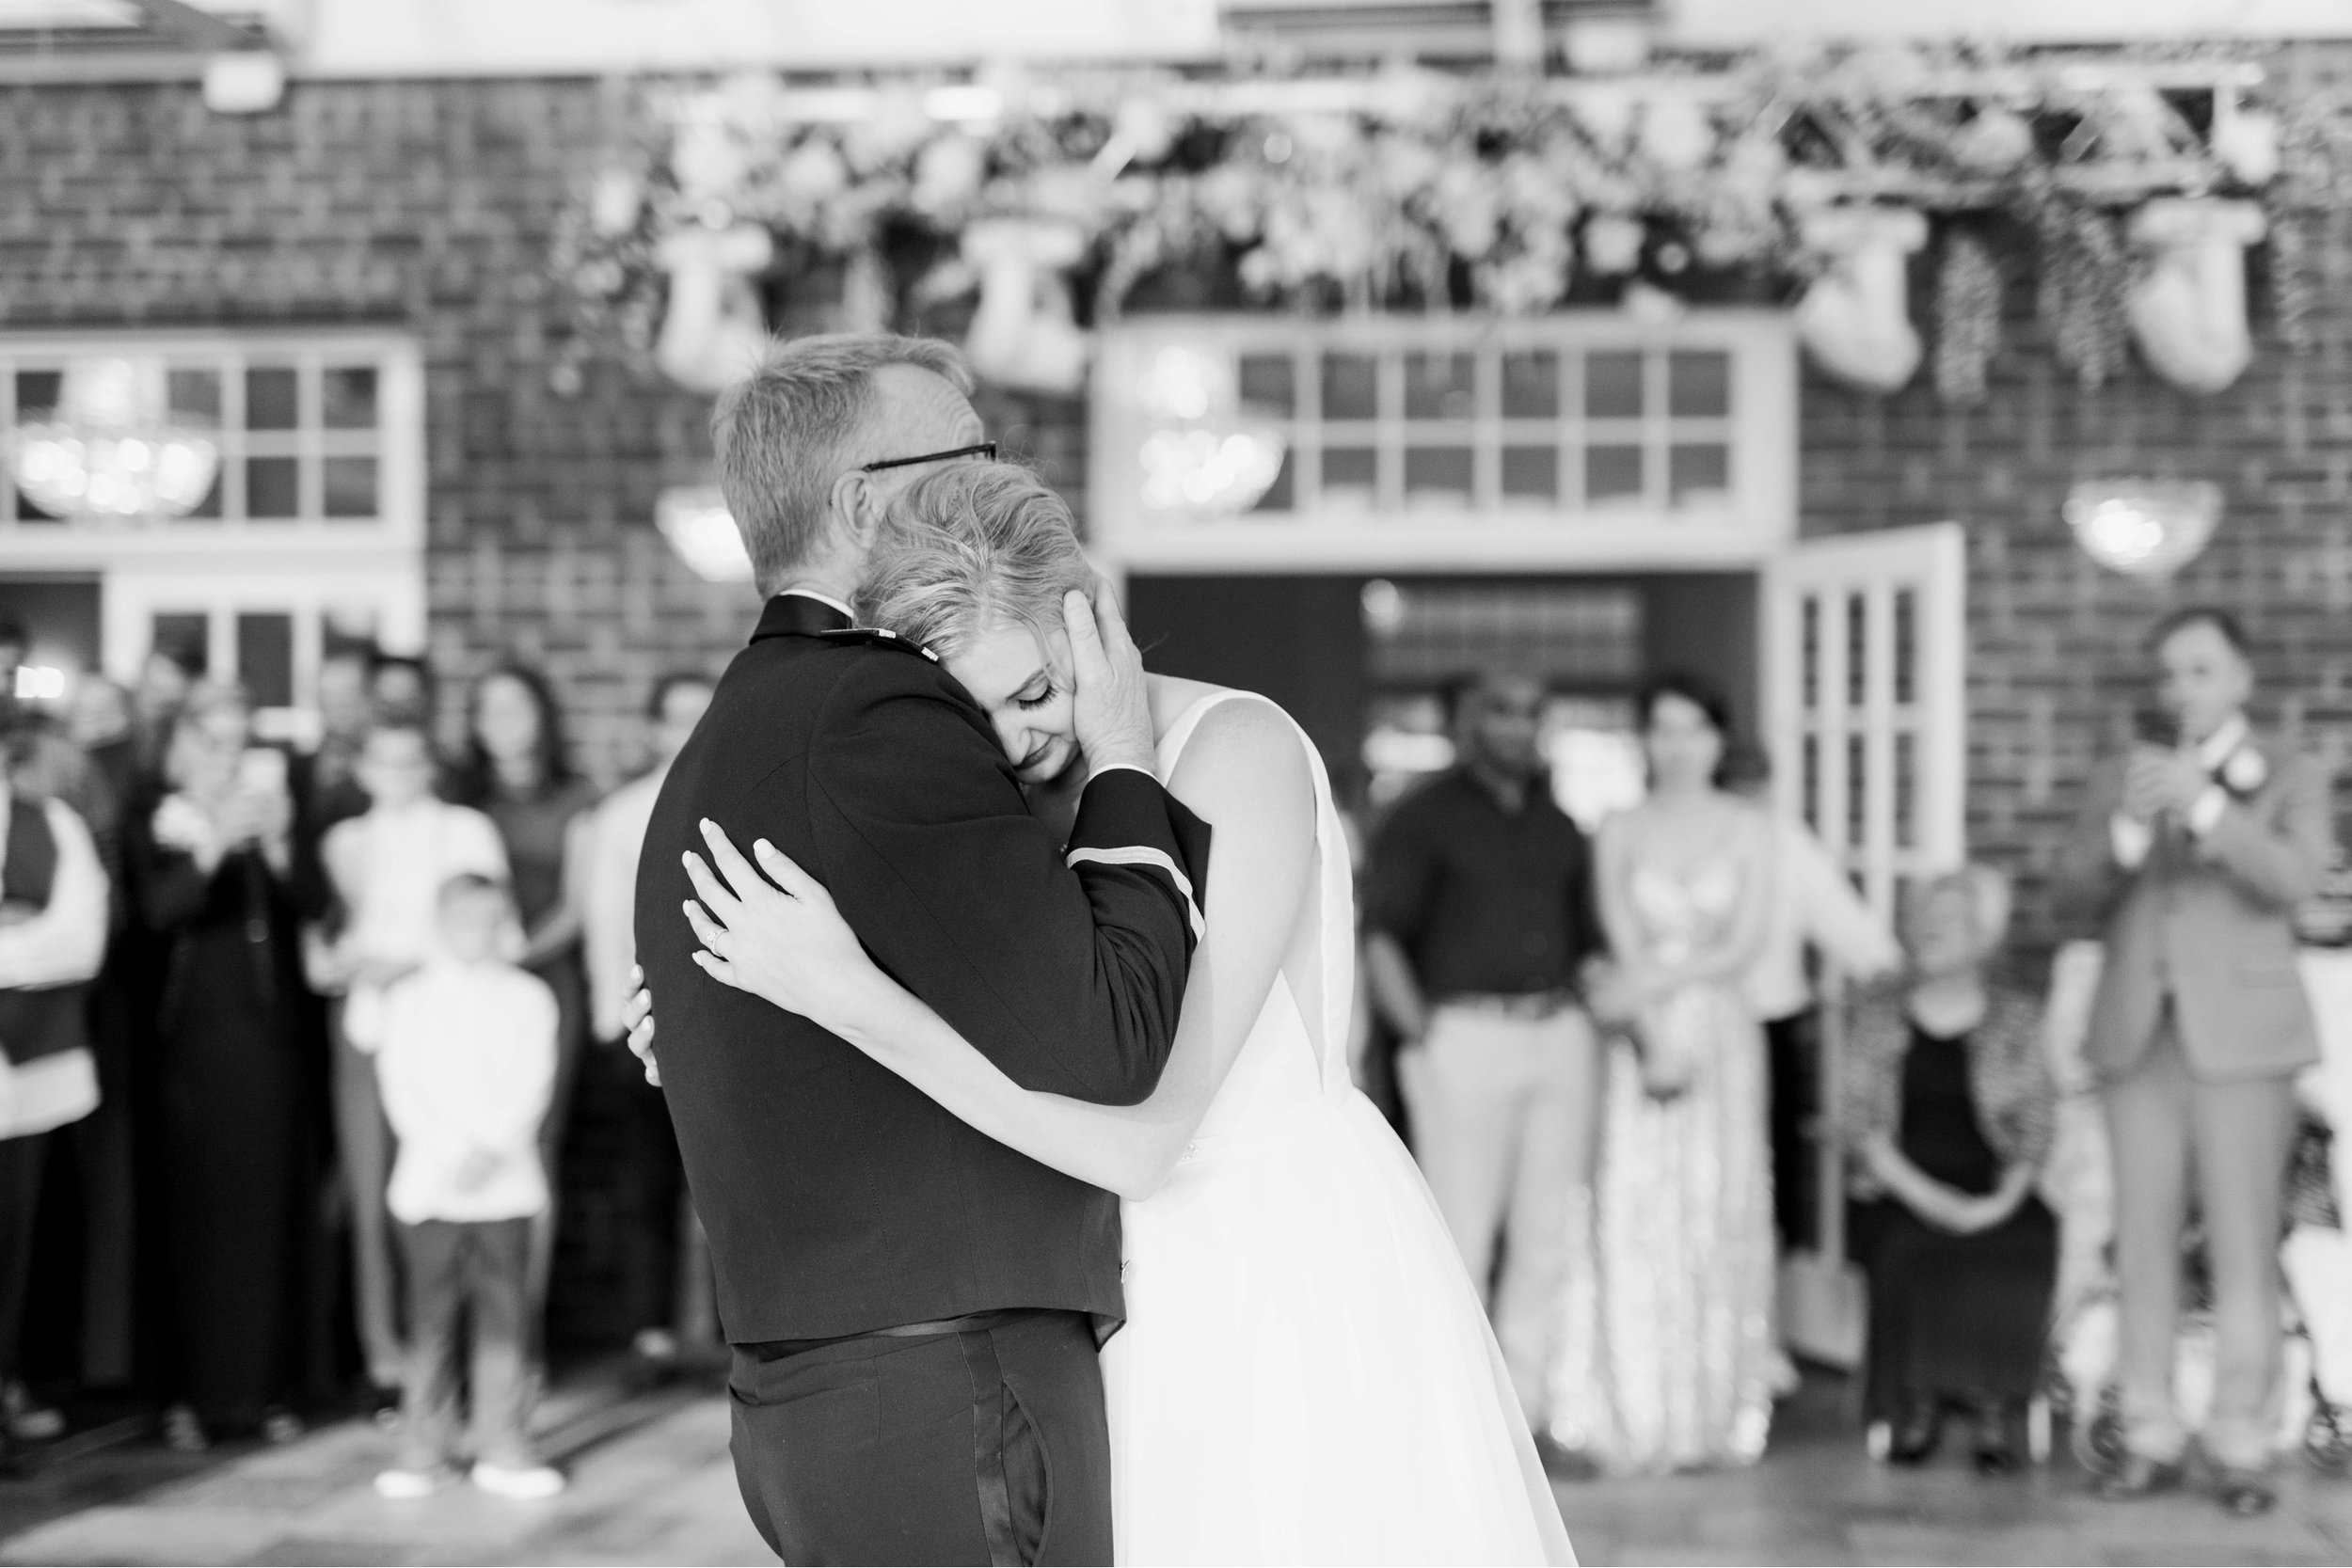 westmanorestate_entwinedevents_lynchburgweddingphotographer_Virginiaweddingphotographer_kateyam 48.jpg